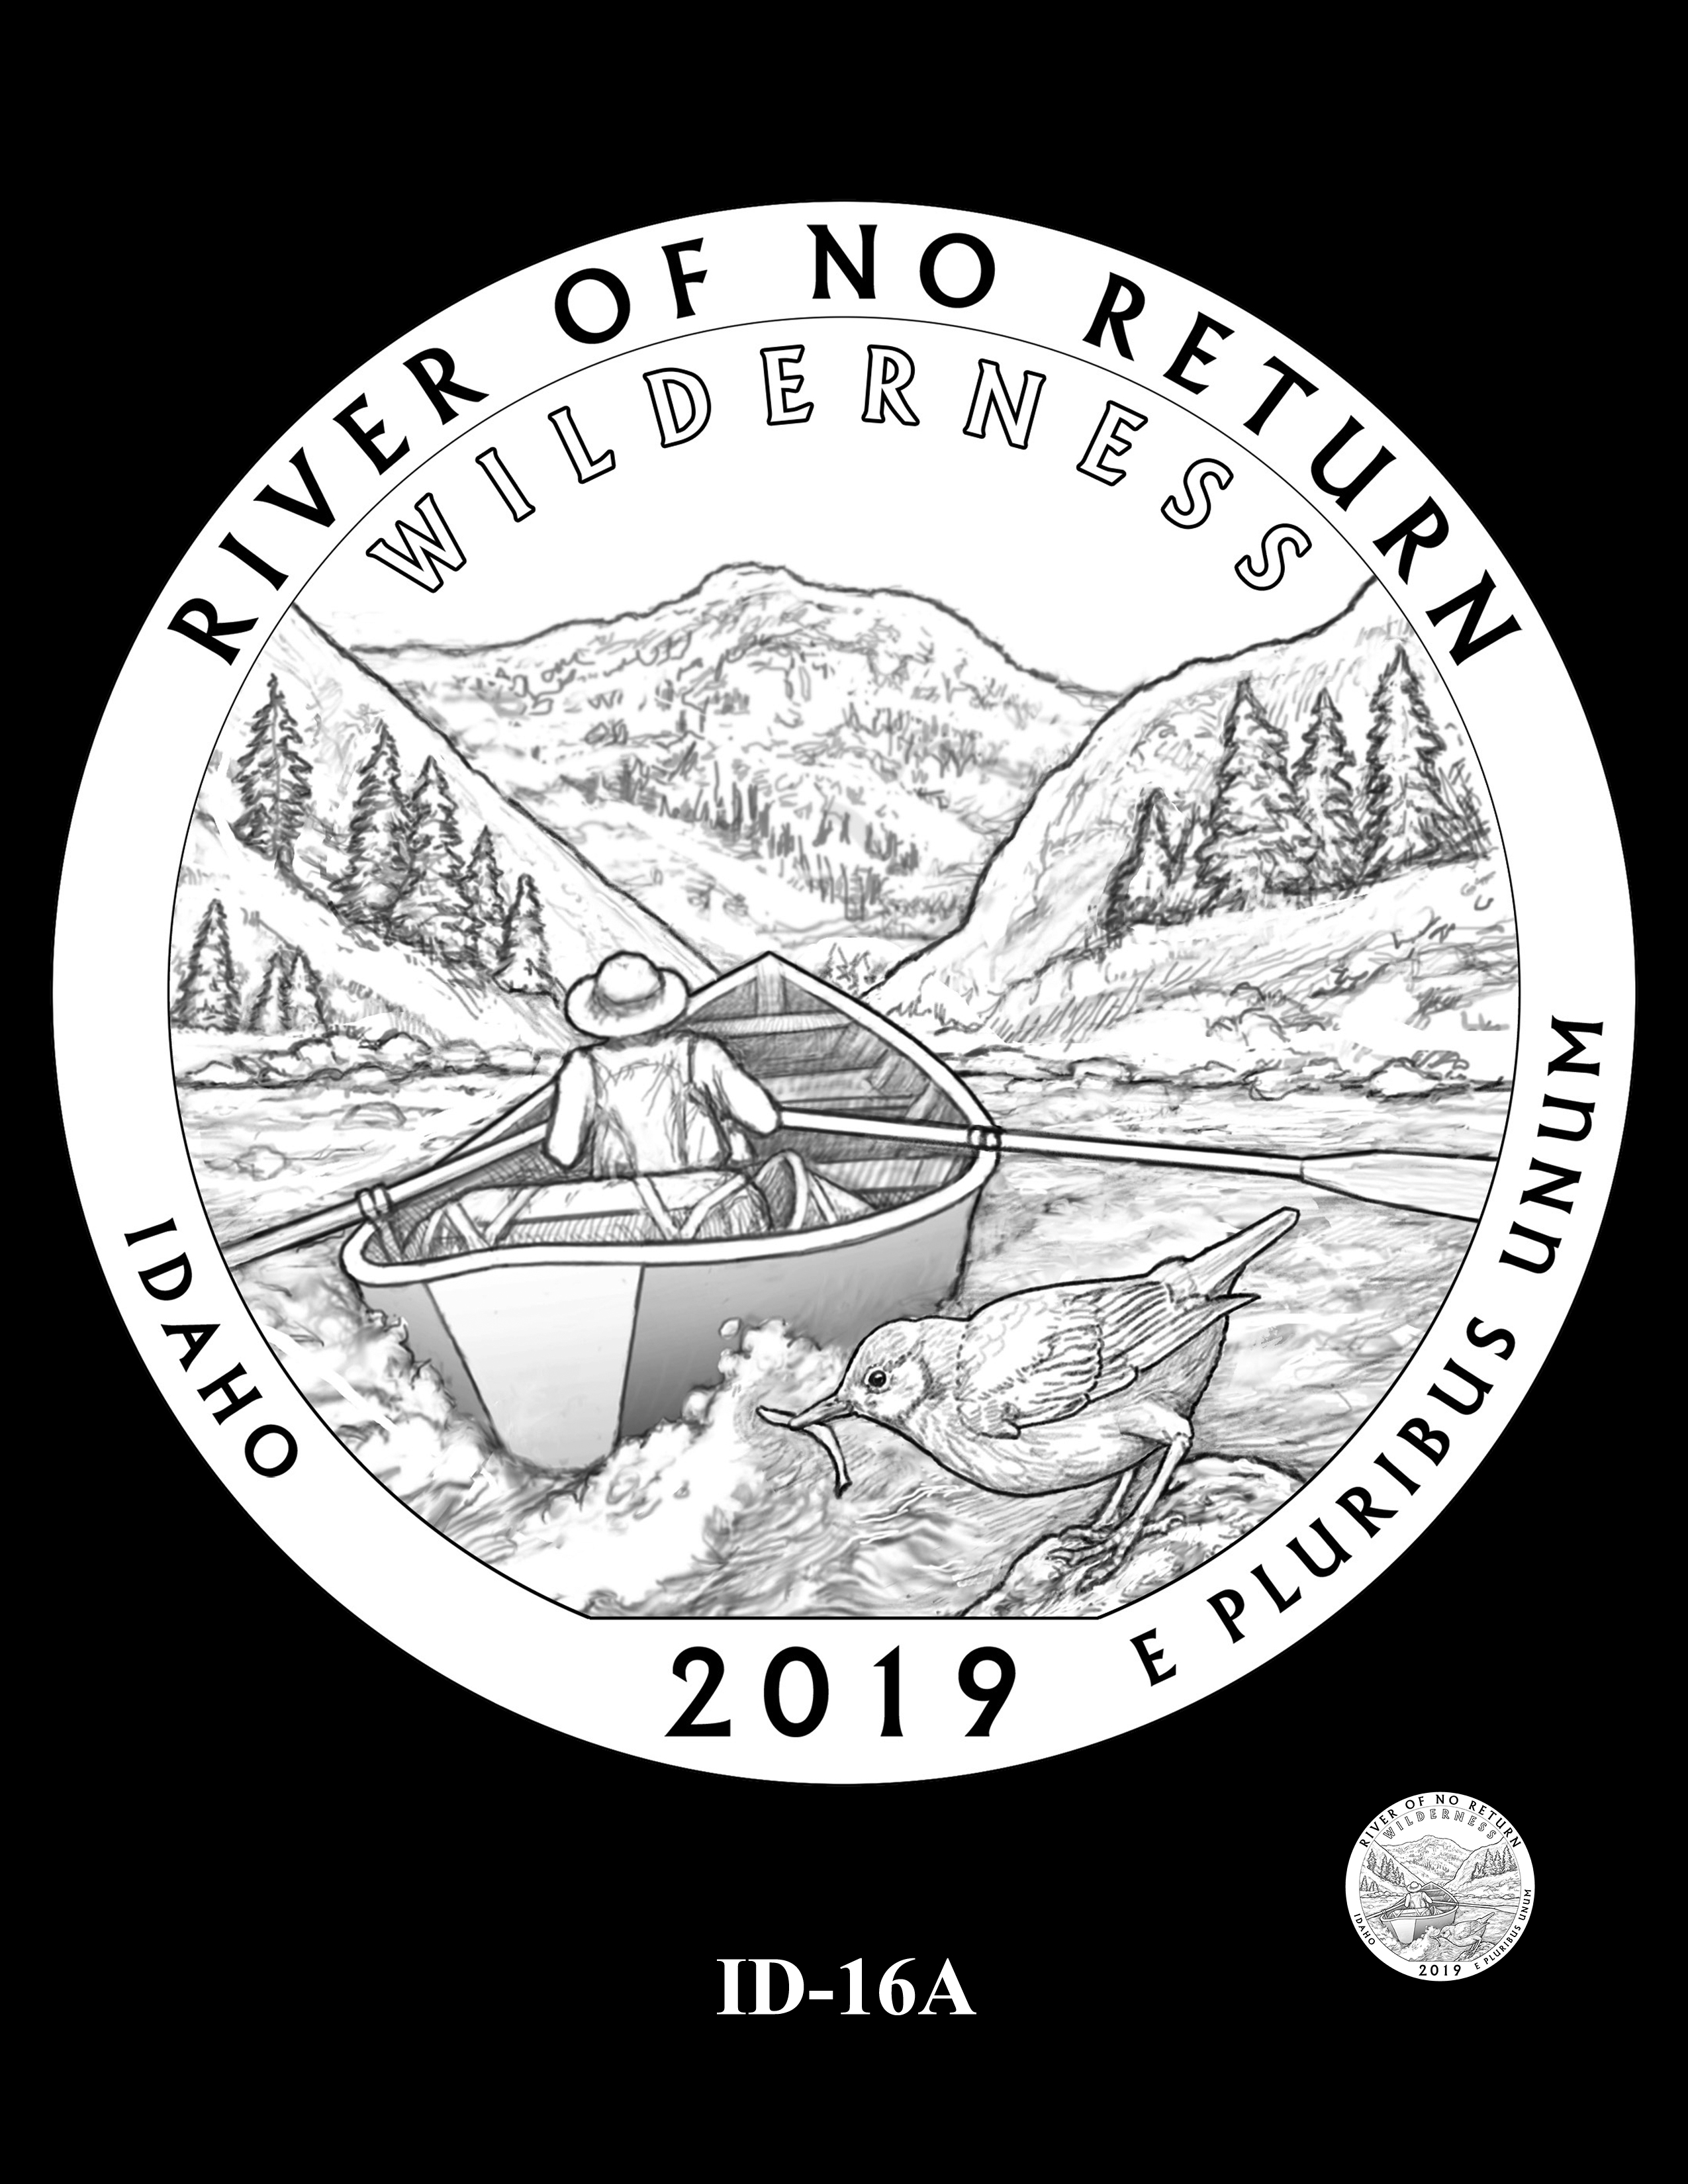 ID-16A -- 2019 America the Beautiful Quarters® Program